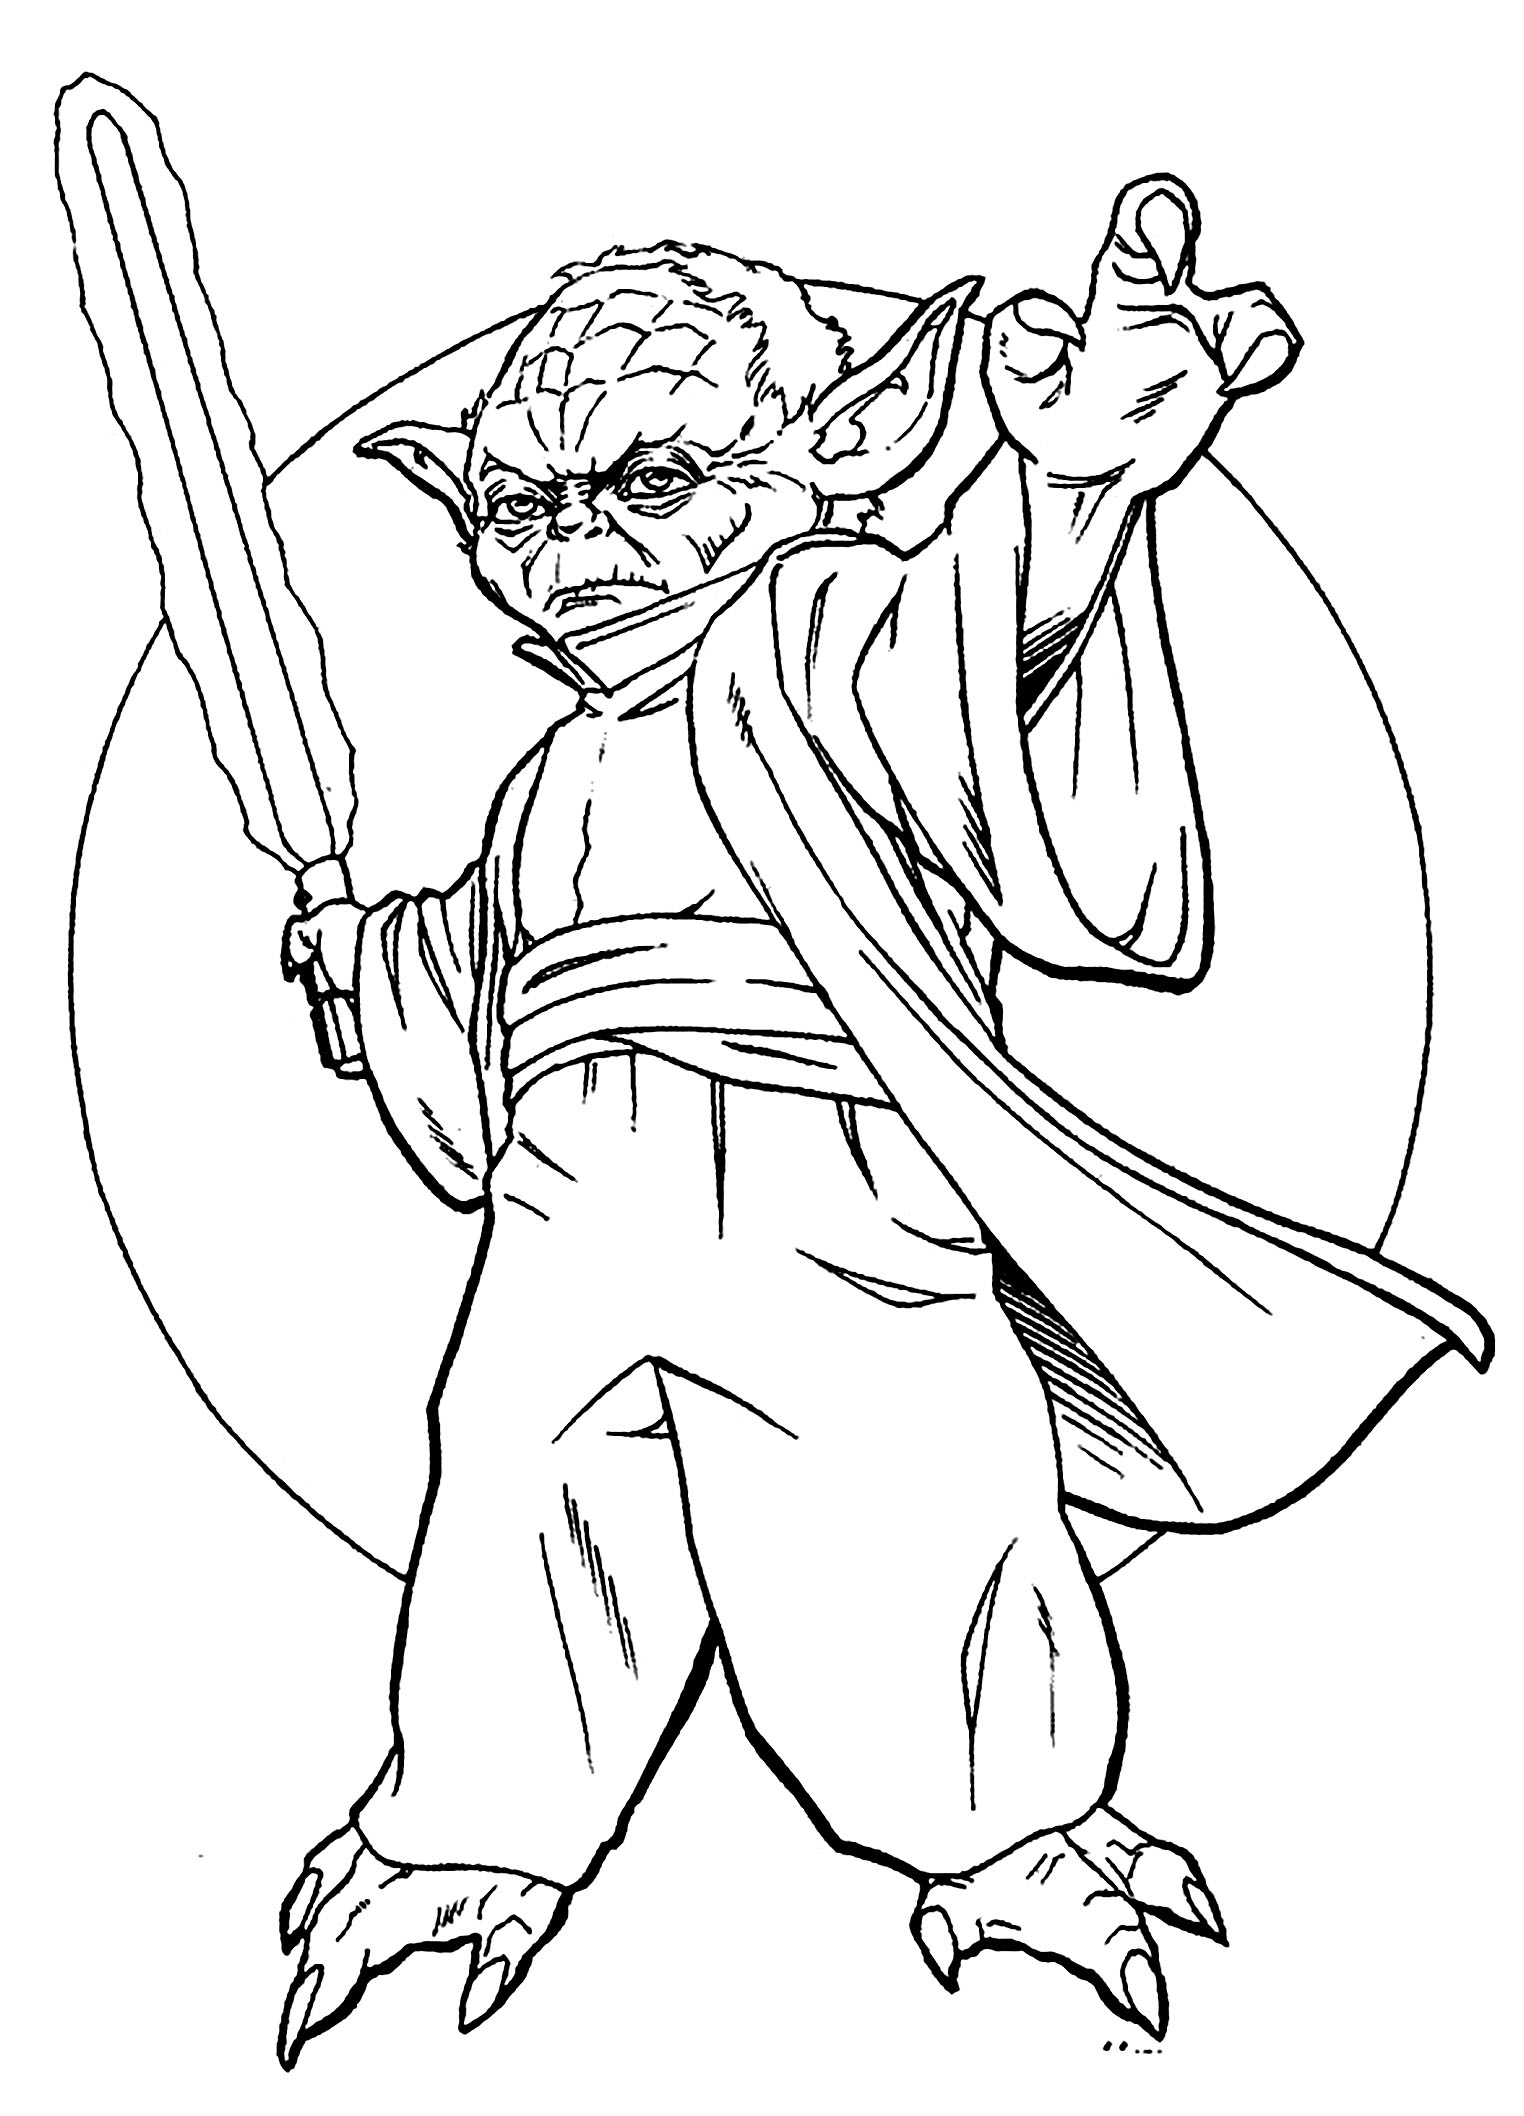 star wars coloring pages to print star wars the clone wars coloring pages printable pages star print to coloring wars